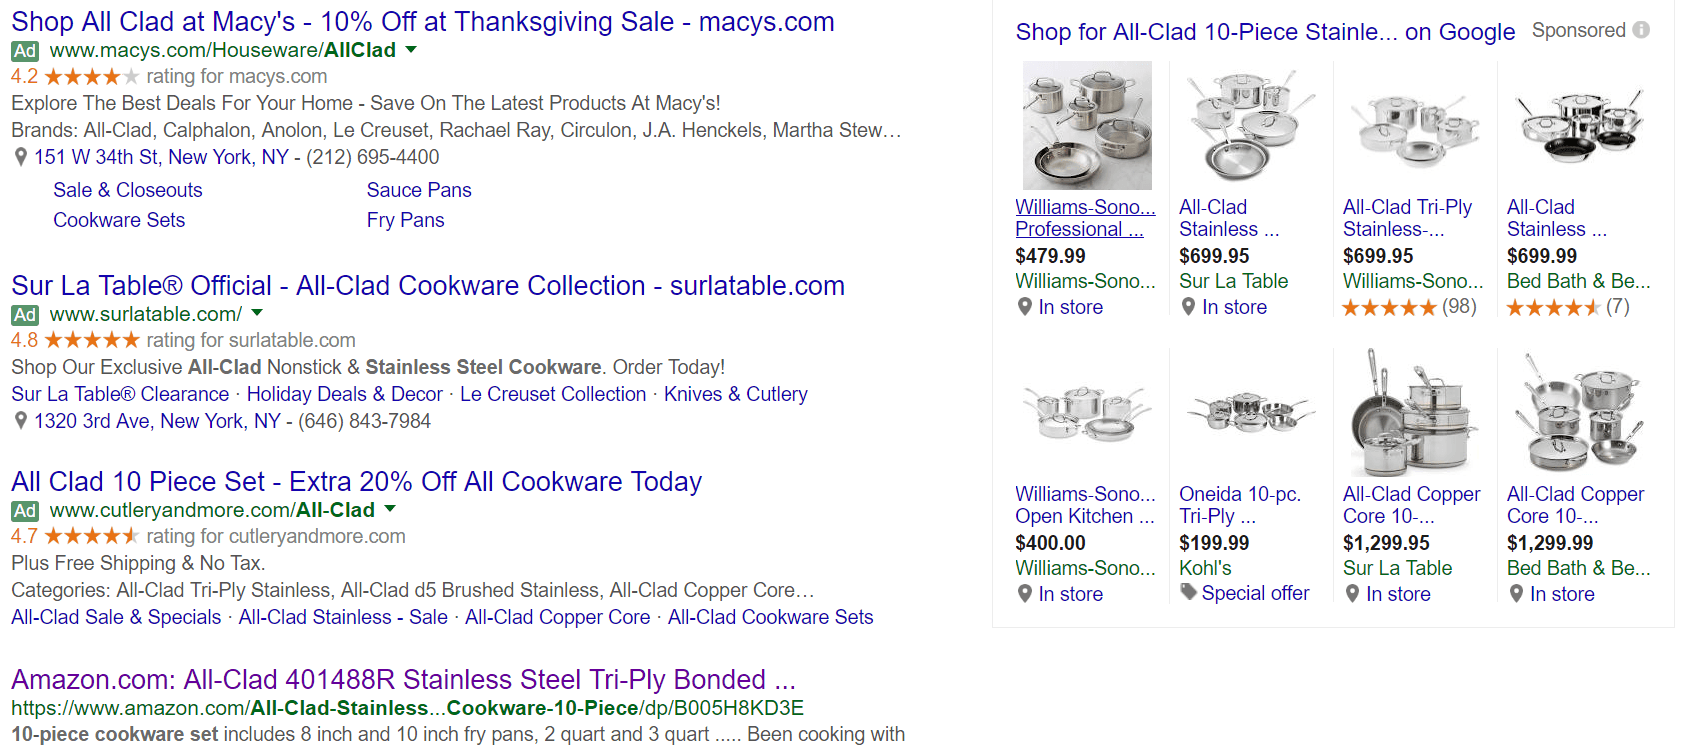 all-clad-google-search-merchandise-1